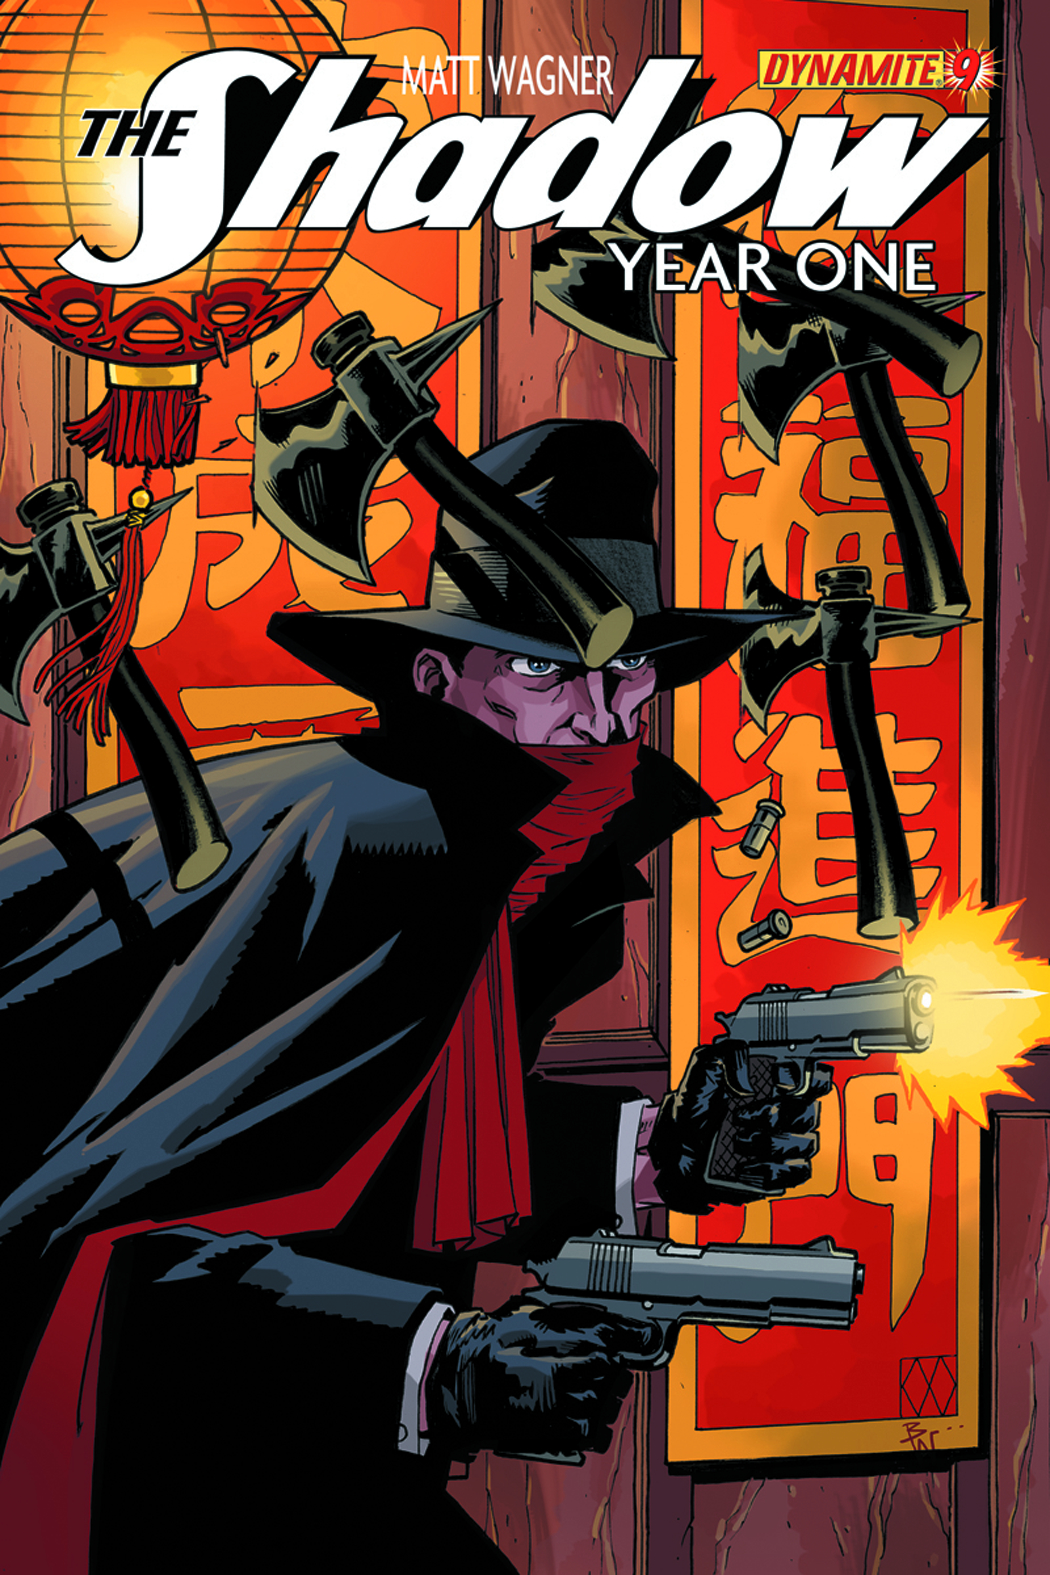 SHADOW YEAR ONE #9